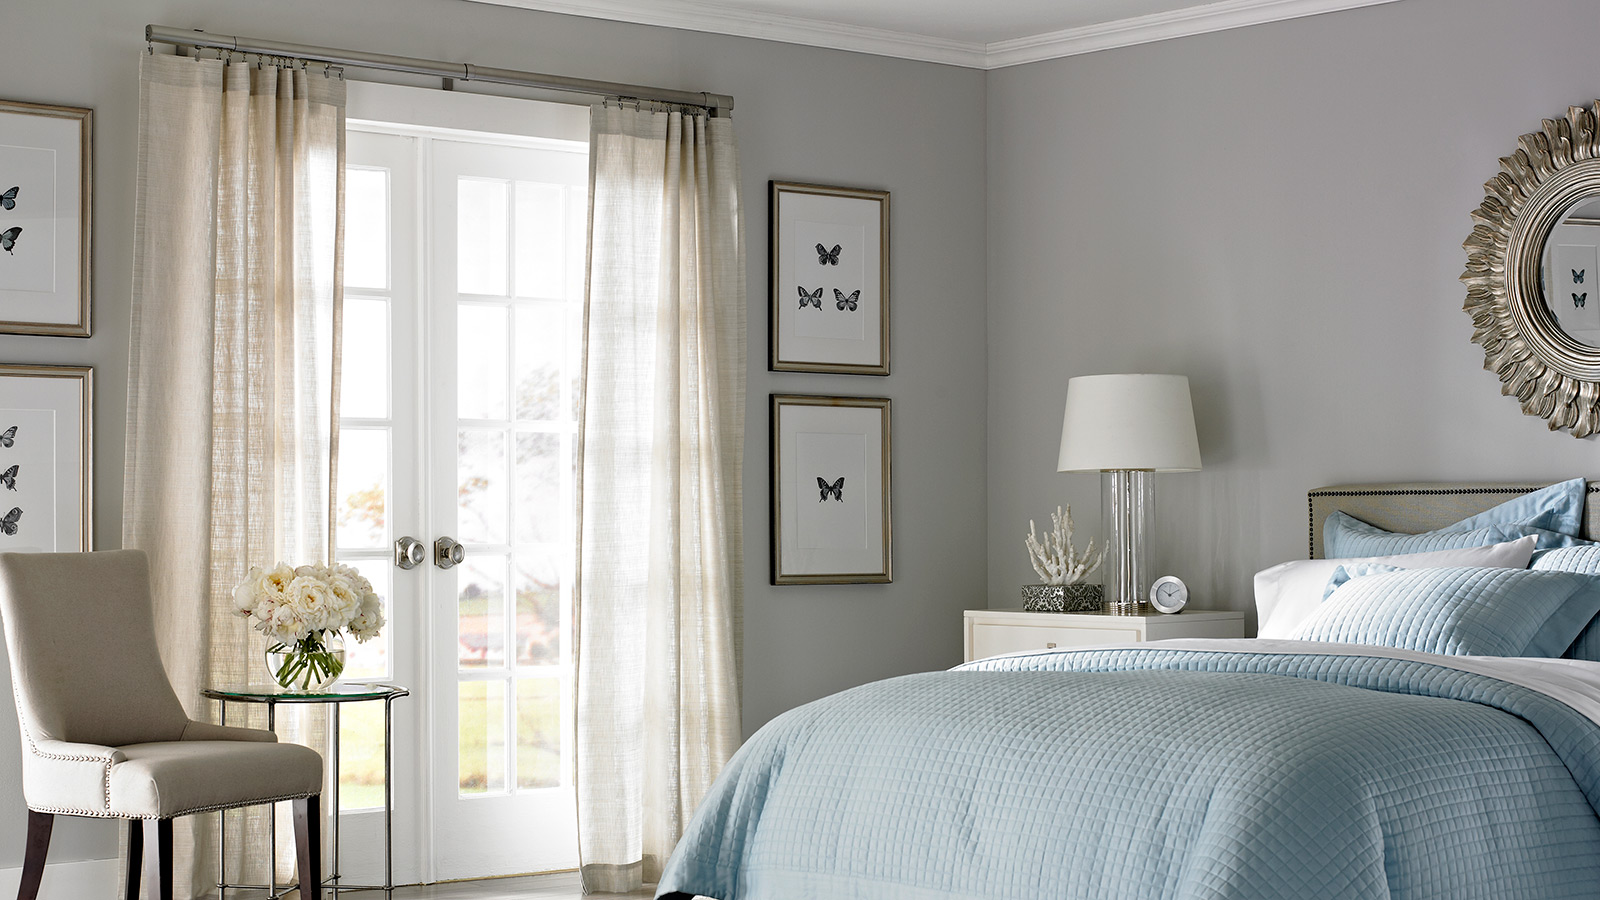 savings x shades texnoklimat privacy elegance offer com sheer youtube motorized electric drapery and drapes energy